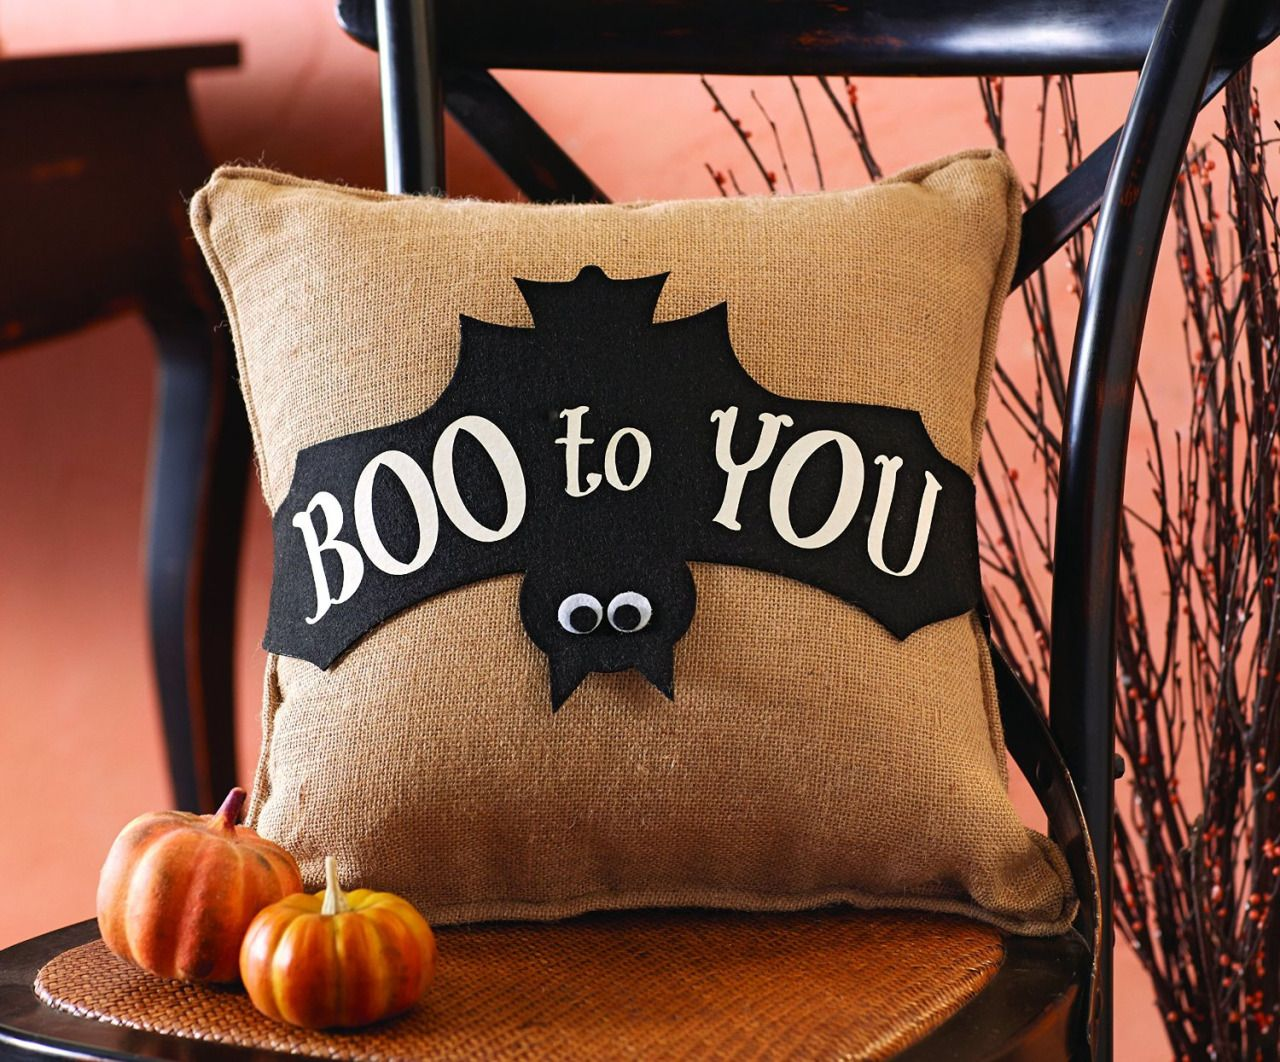 Mud Pie Boo to You Pillow Wrap BUY NOW  http://hot-gamer.tumblr.com/post/149226268057/mud-pie-boo-to-you-pillow-wrap-buy-now